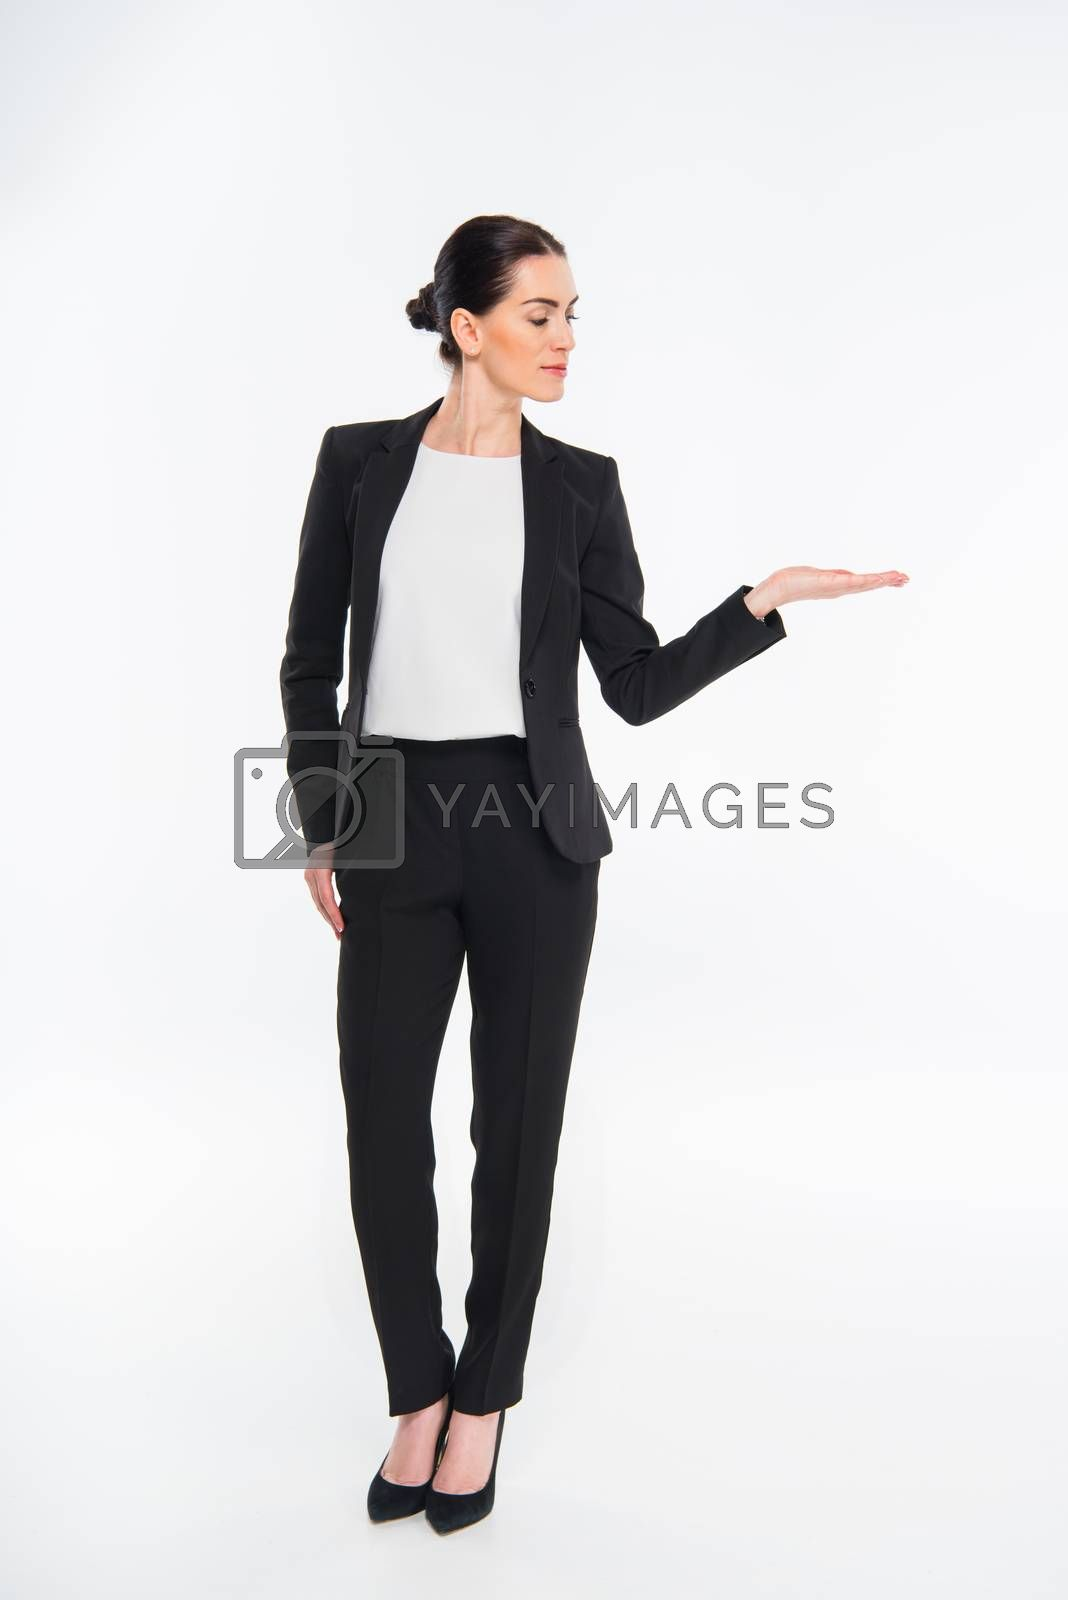 Businesswoman looking at palm by LightFieldStudios